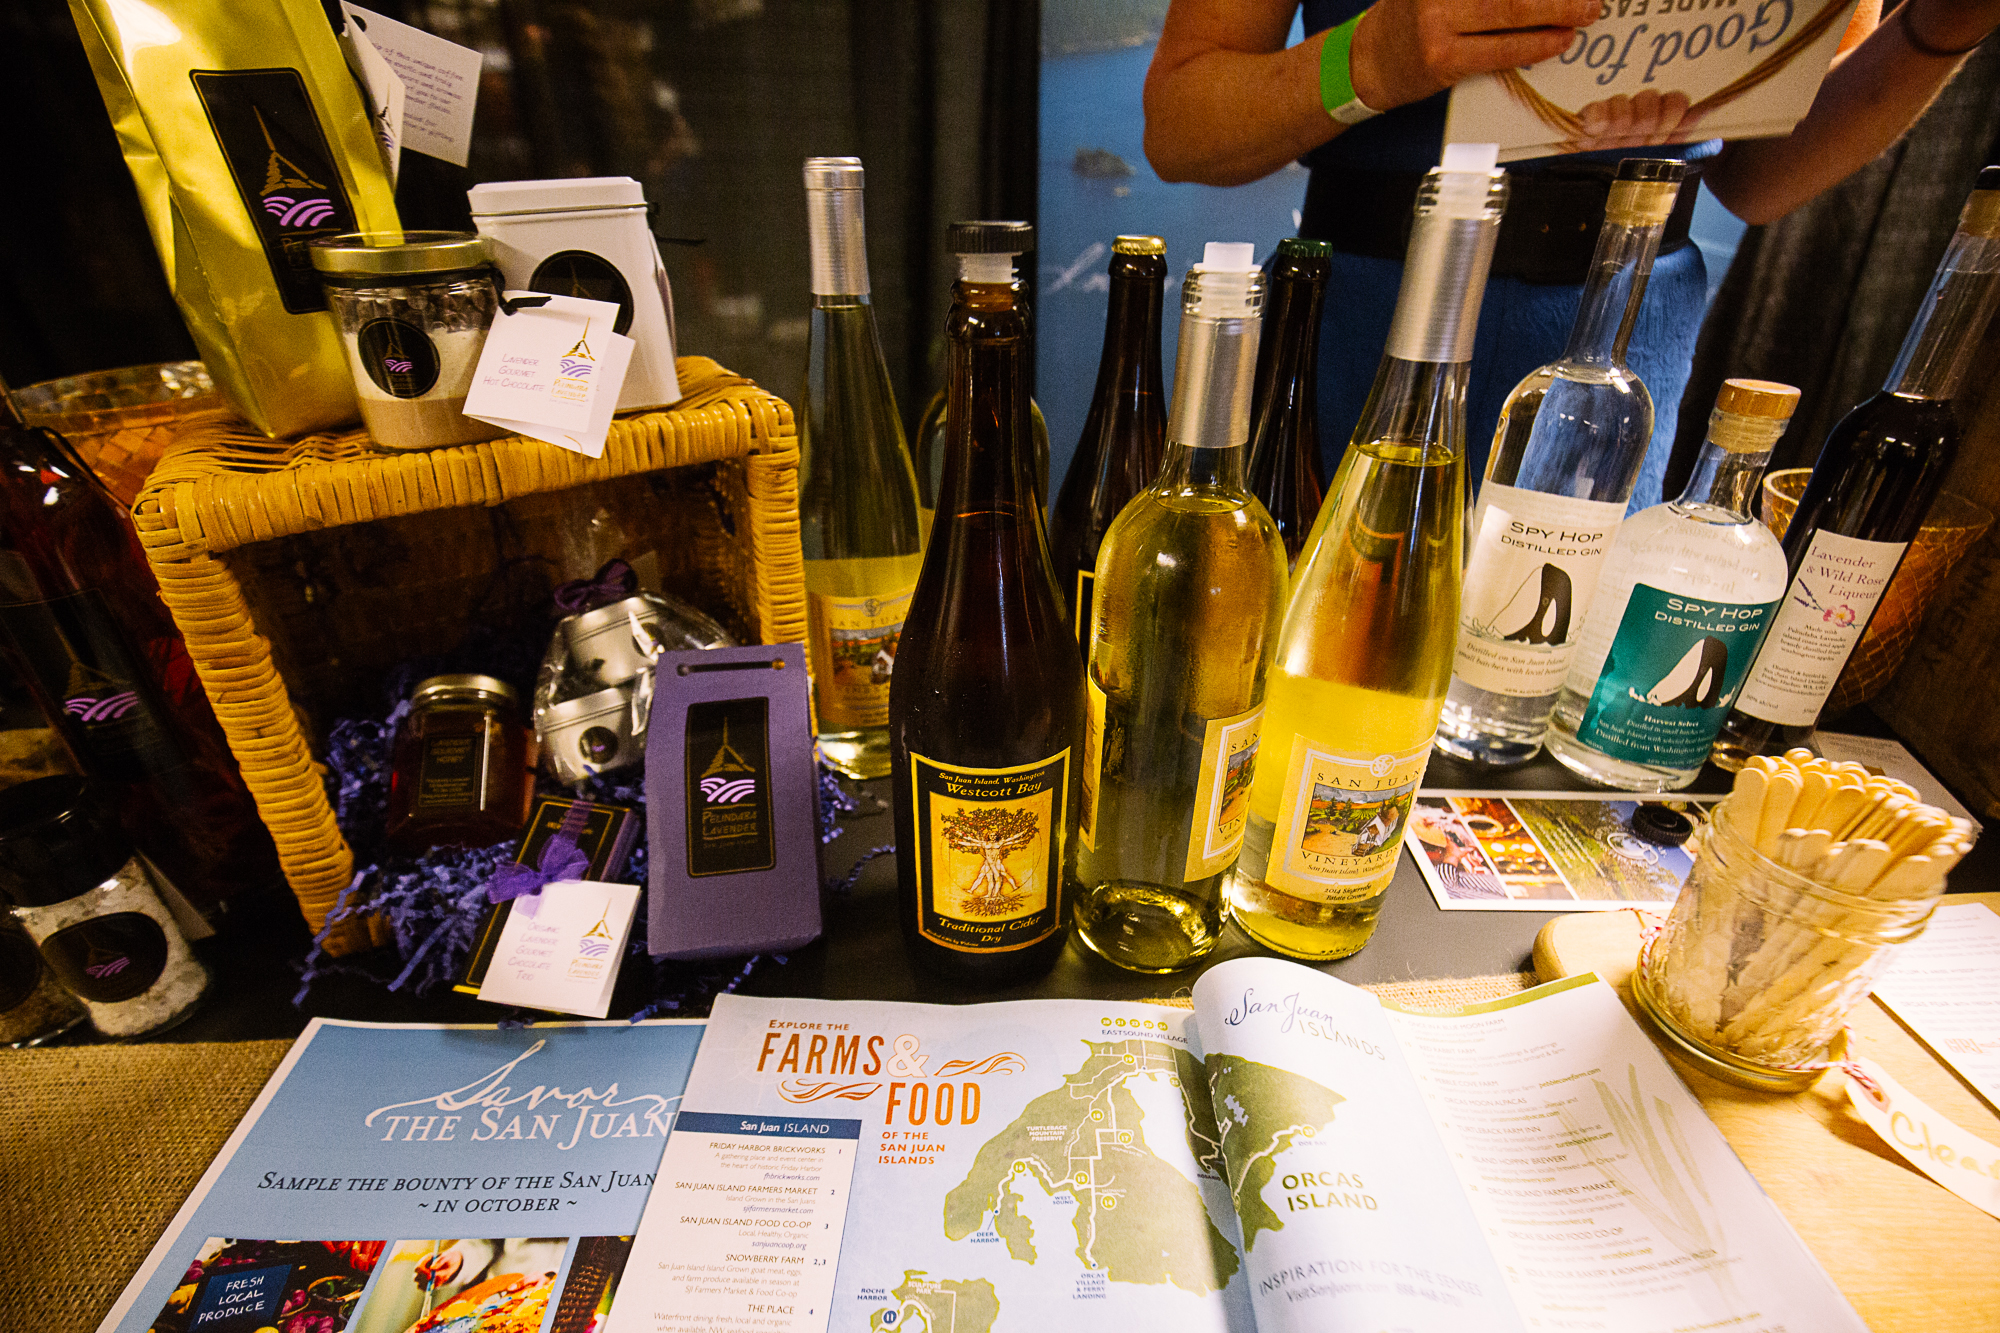 The Seattle Food and Wine Experience is one of the Northwest's premiere food and wine events. The event brings wine from all across the Northwest as well as food from some of the best restaurants the area has to offer. (Joshua Lewis / Seattle Refined)